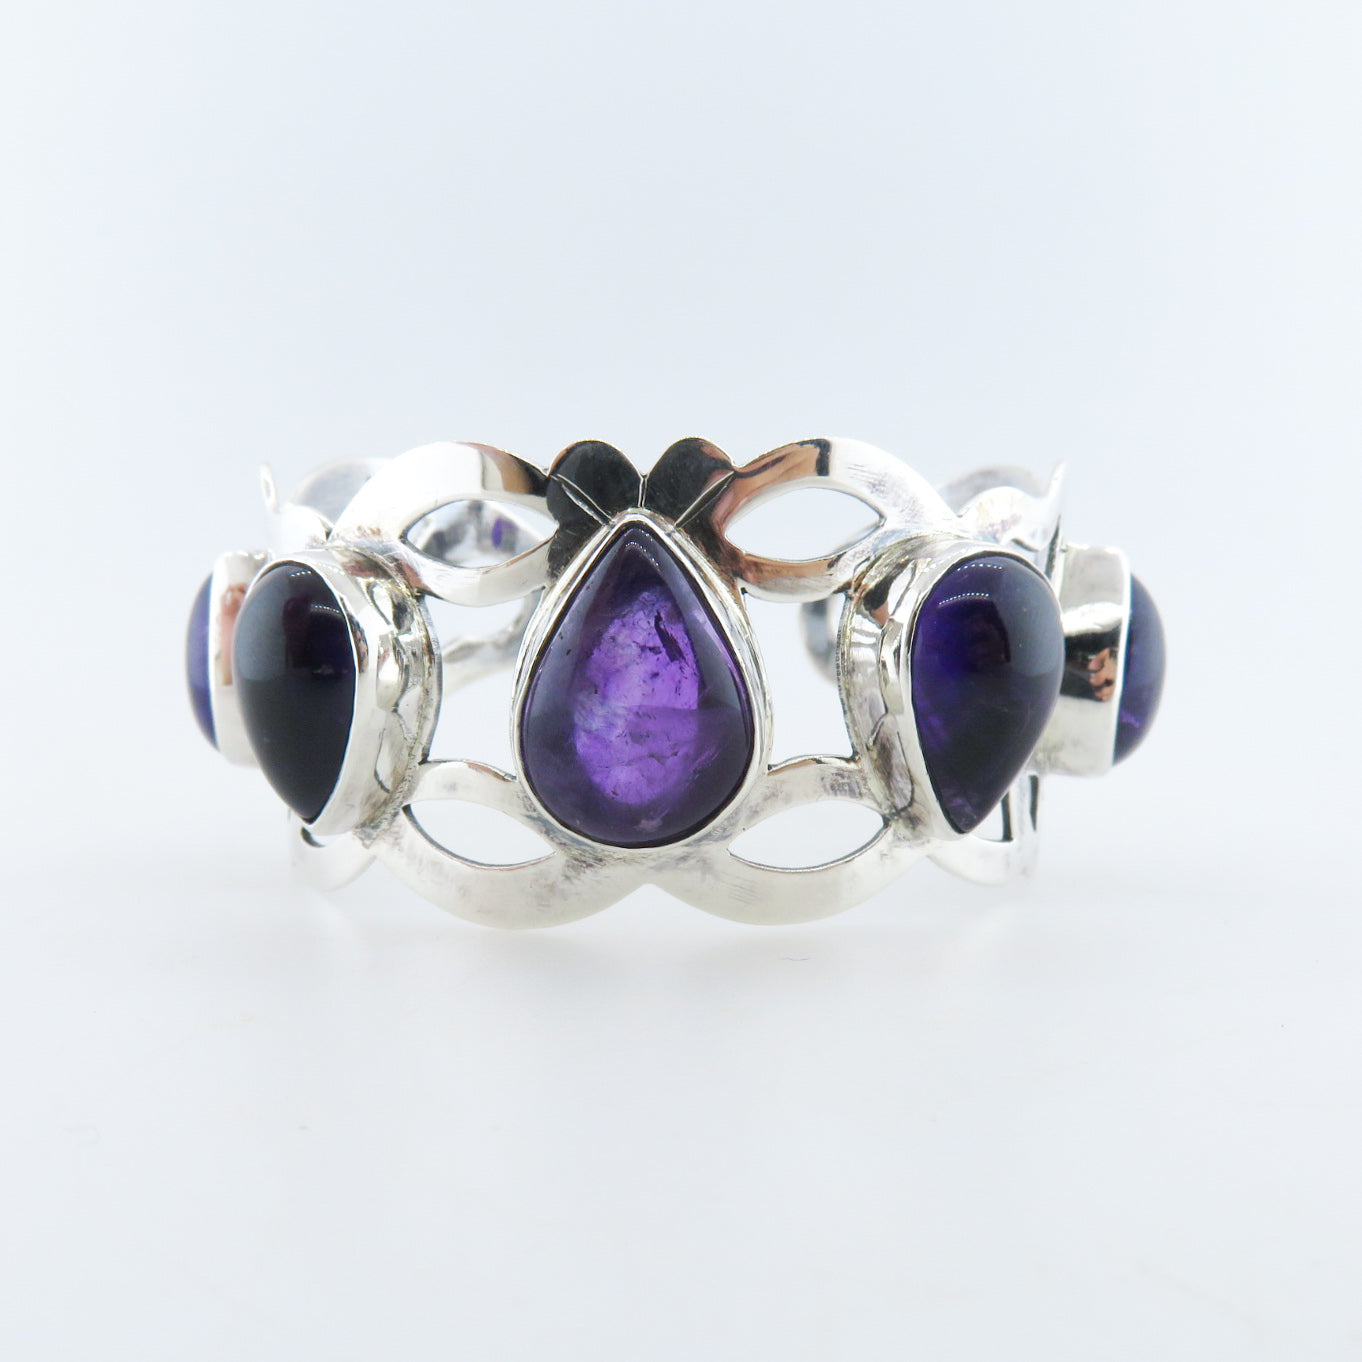 Sterling Silver Bangle with Amethyst